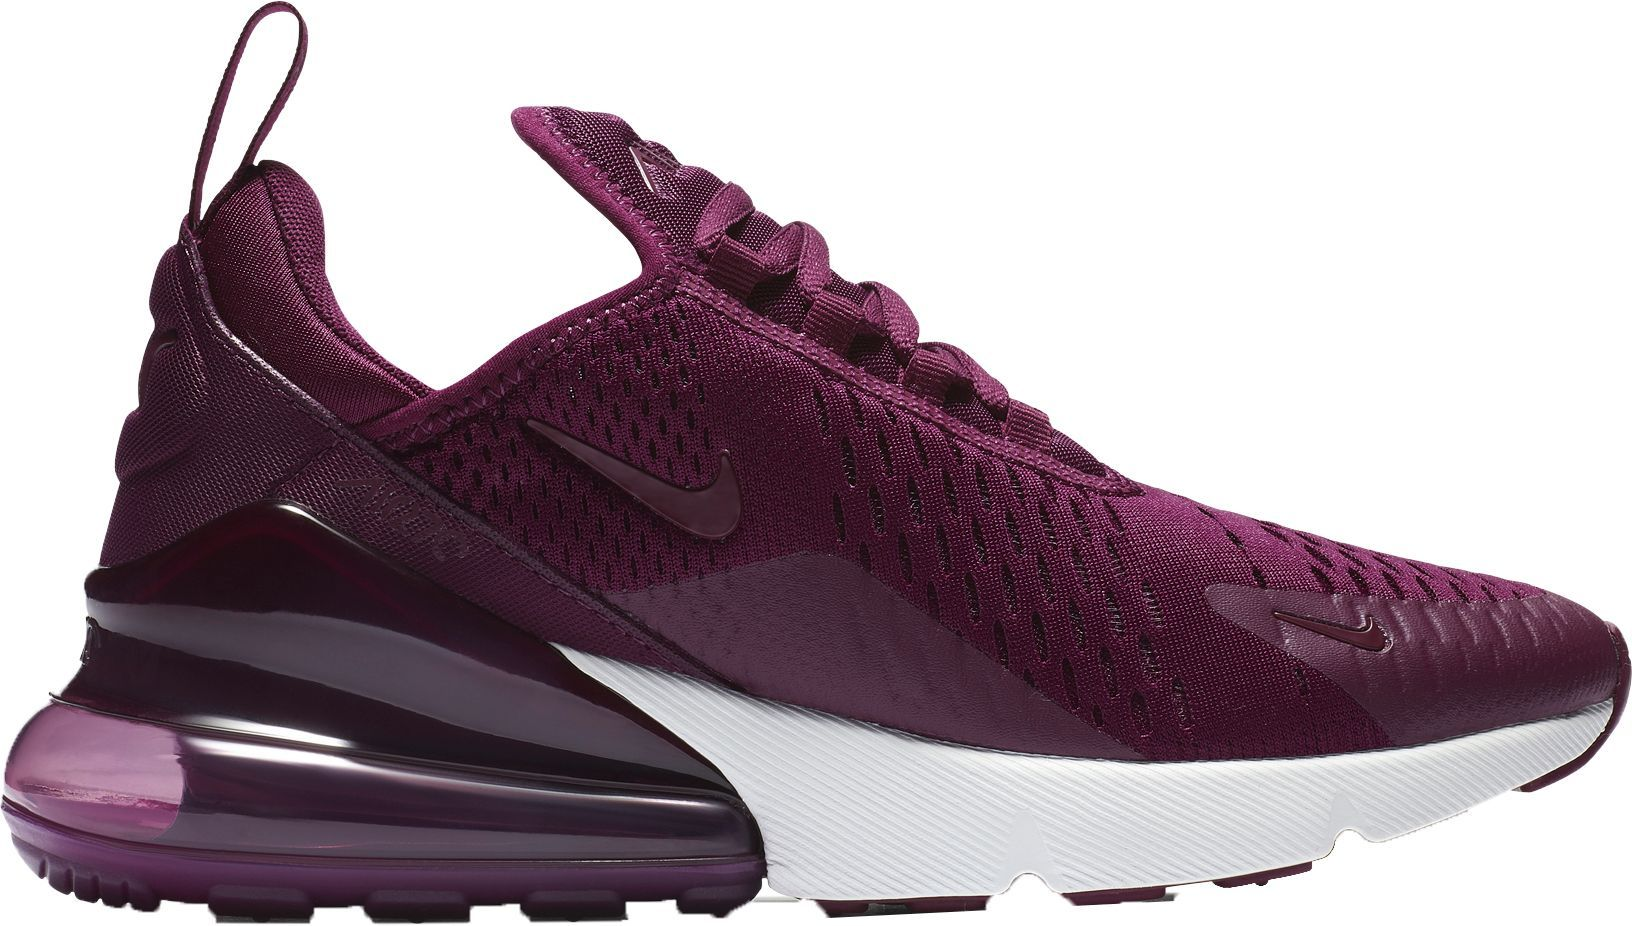 321c6d2dd2 Nike Women's Air Max 270 Shoes in 2019 | Products | Air max women ...